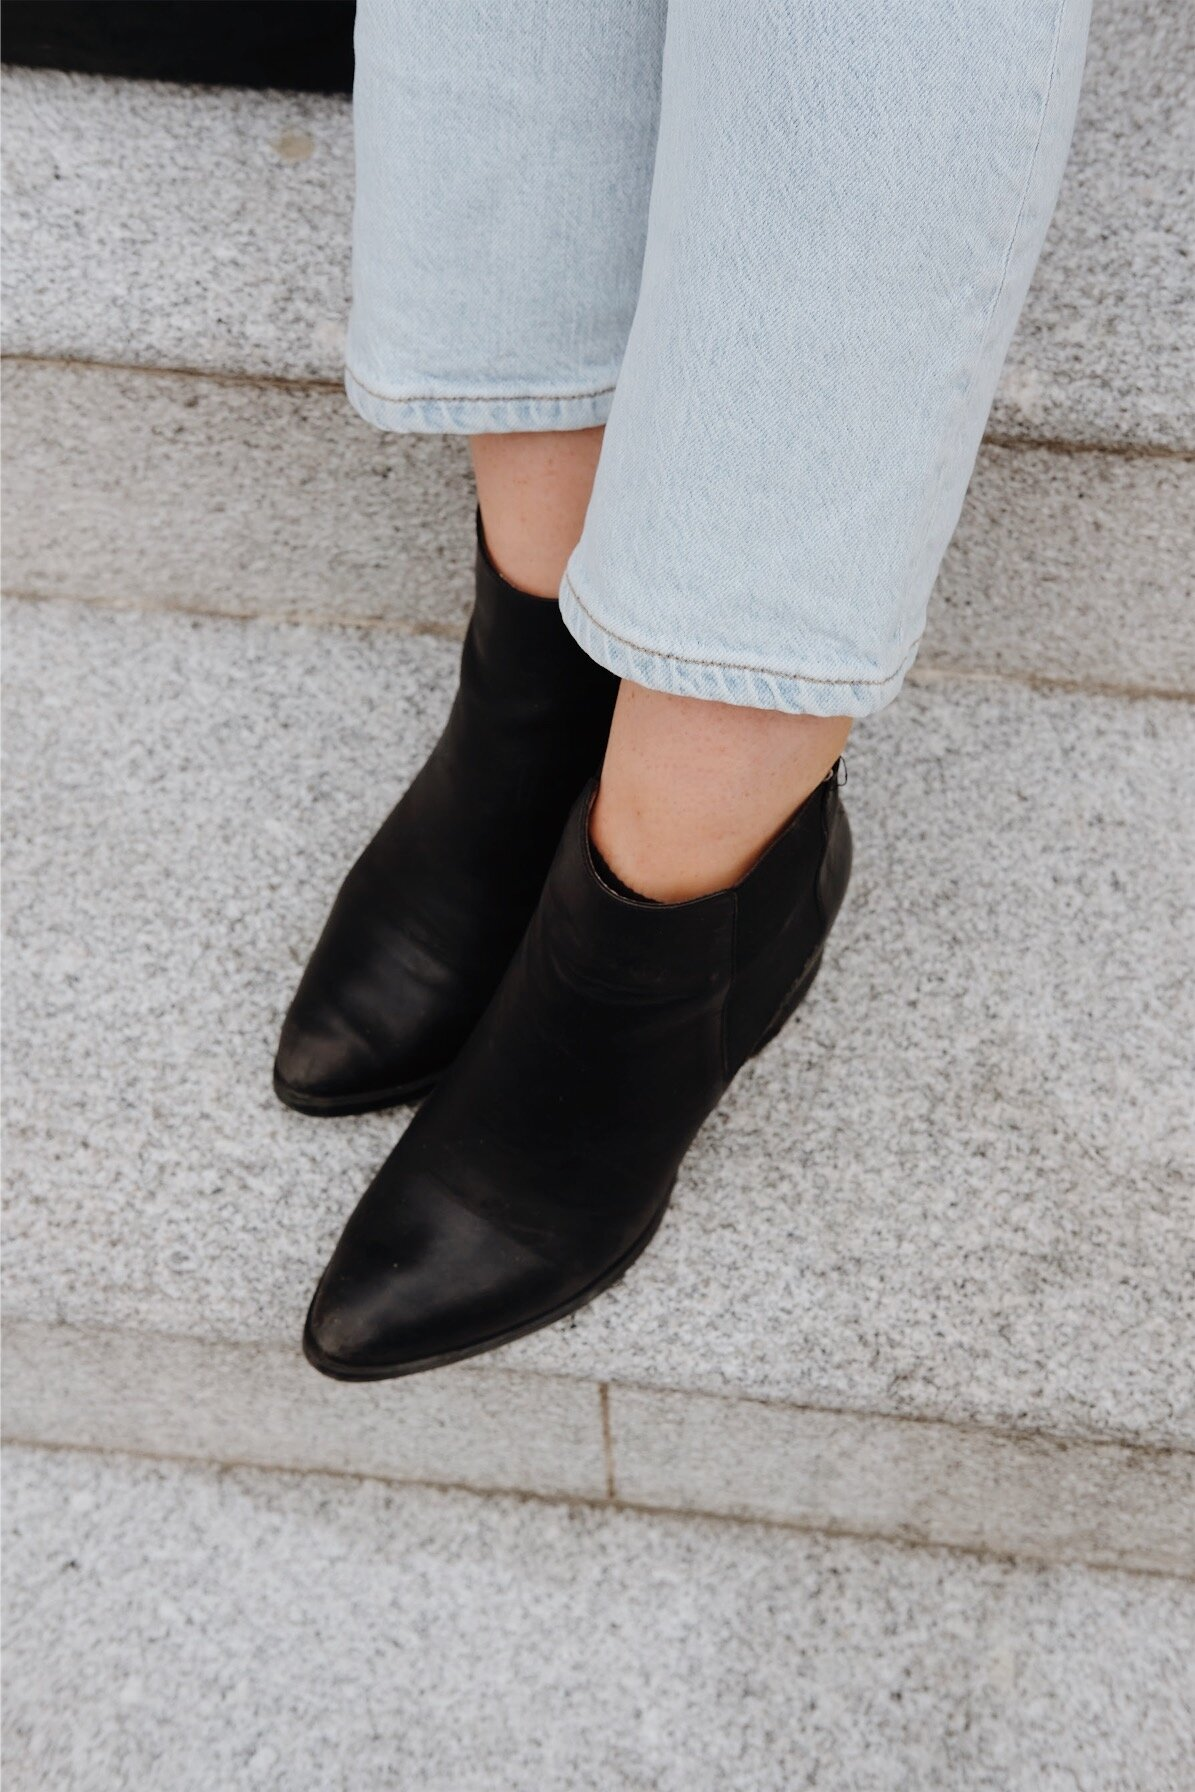 Travel-friendly boots // A Week Of Minimalist Travel Outfits With Ellie Hughes From Selflessly Styled on The Good Trade